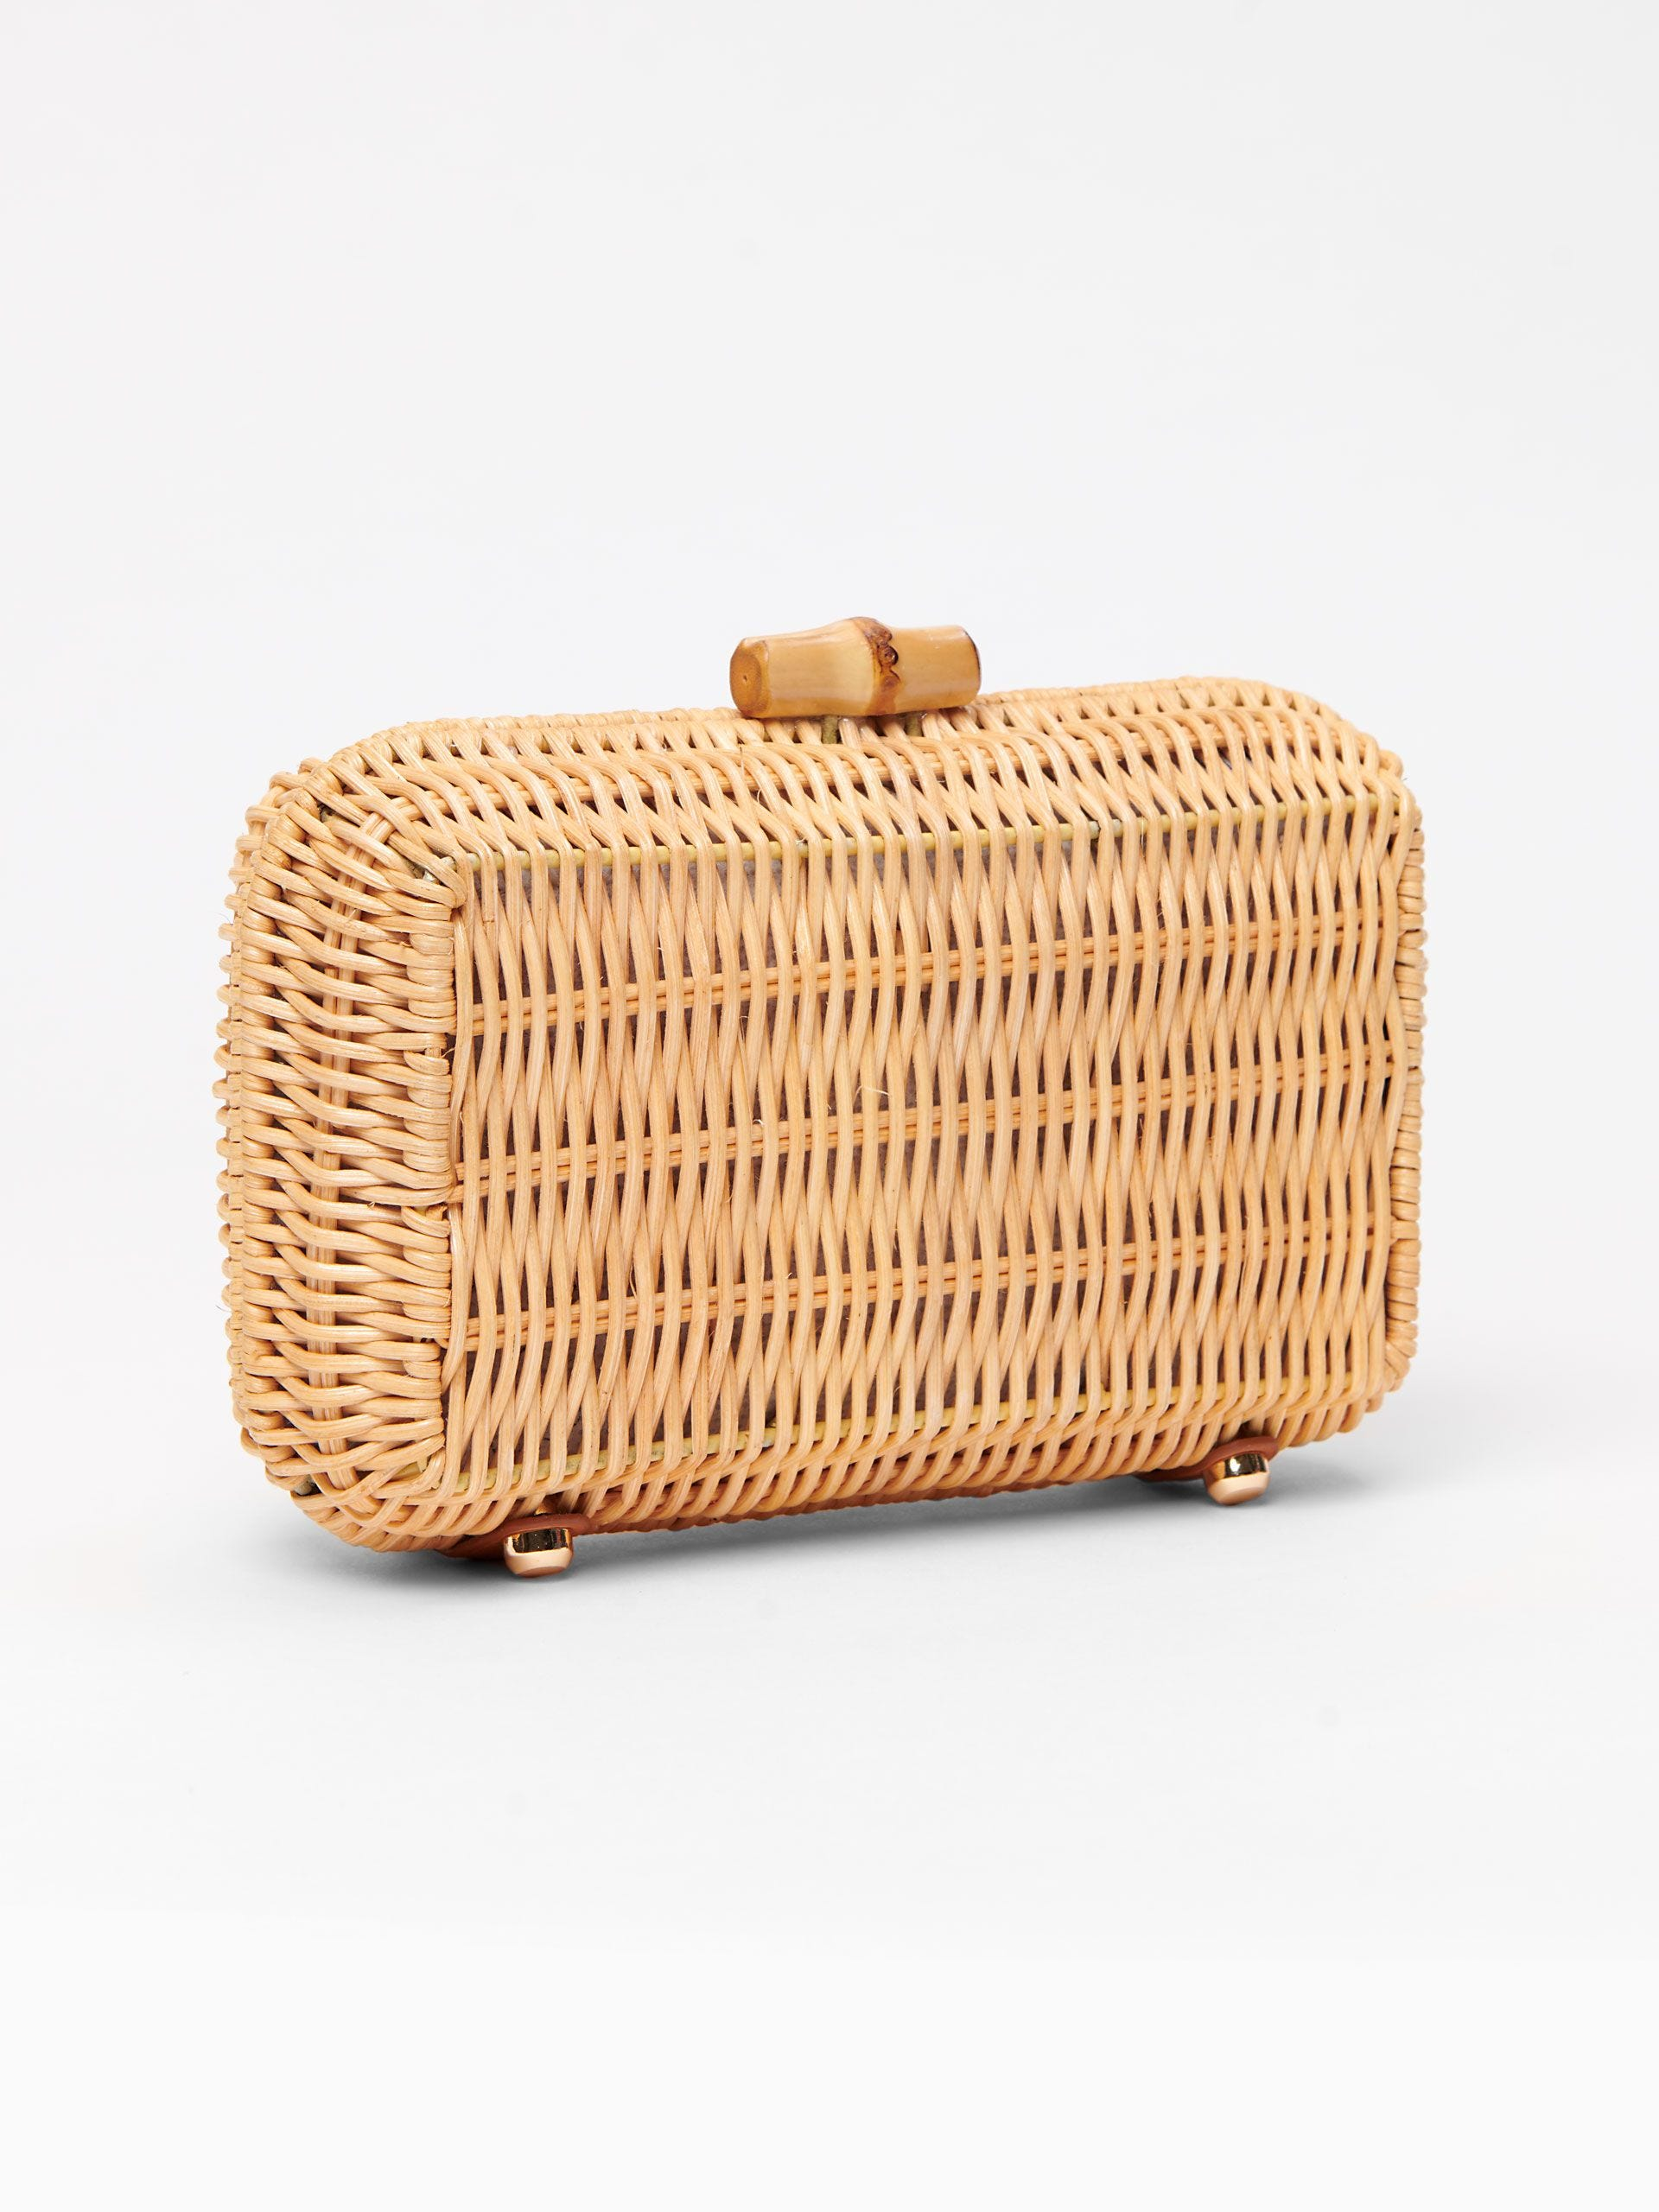 Wicker and Bamboo Clasp Clutch